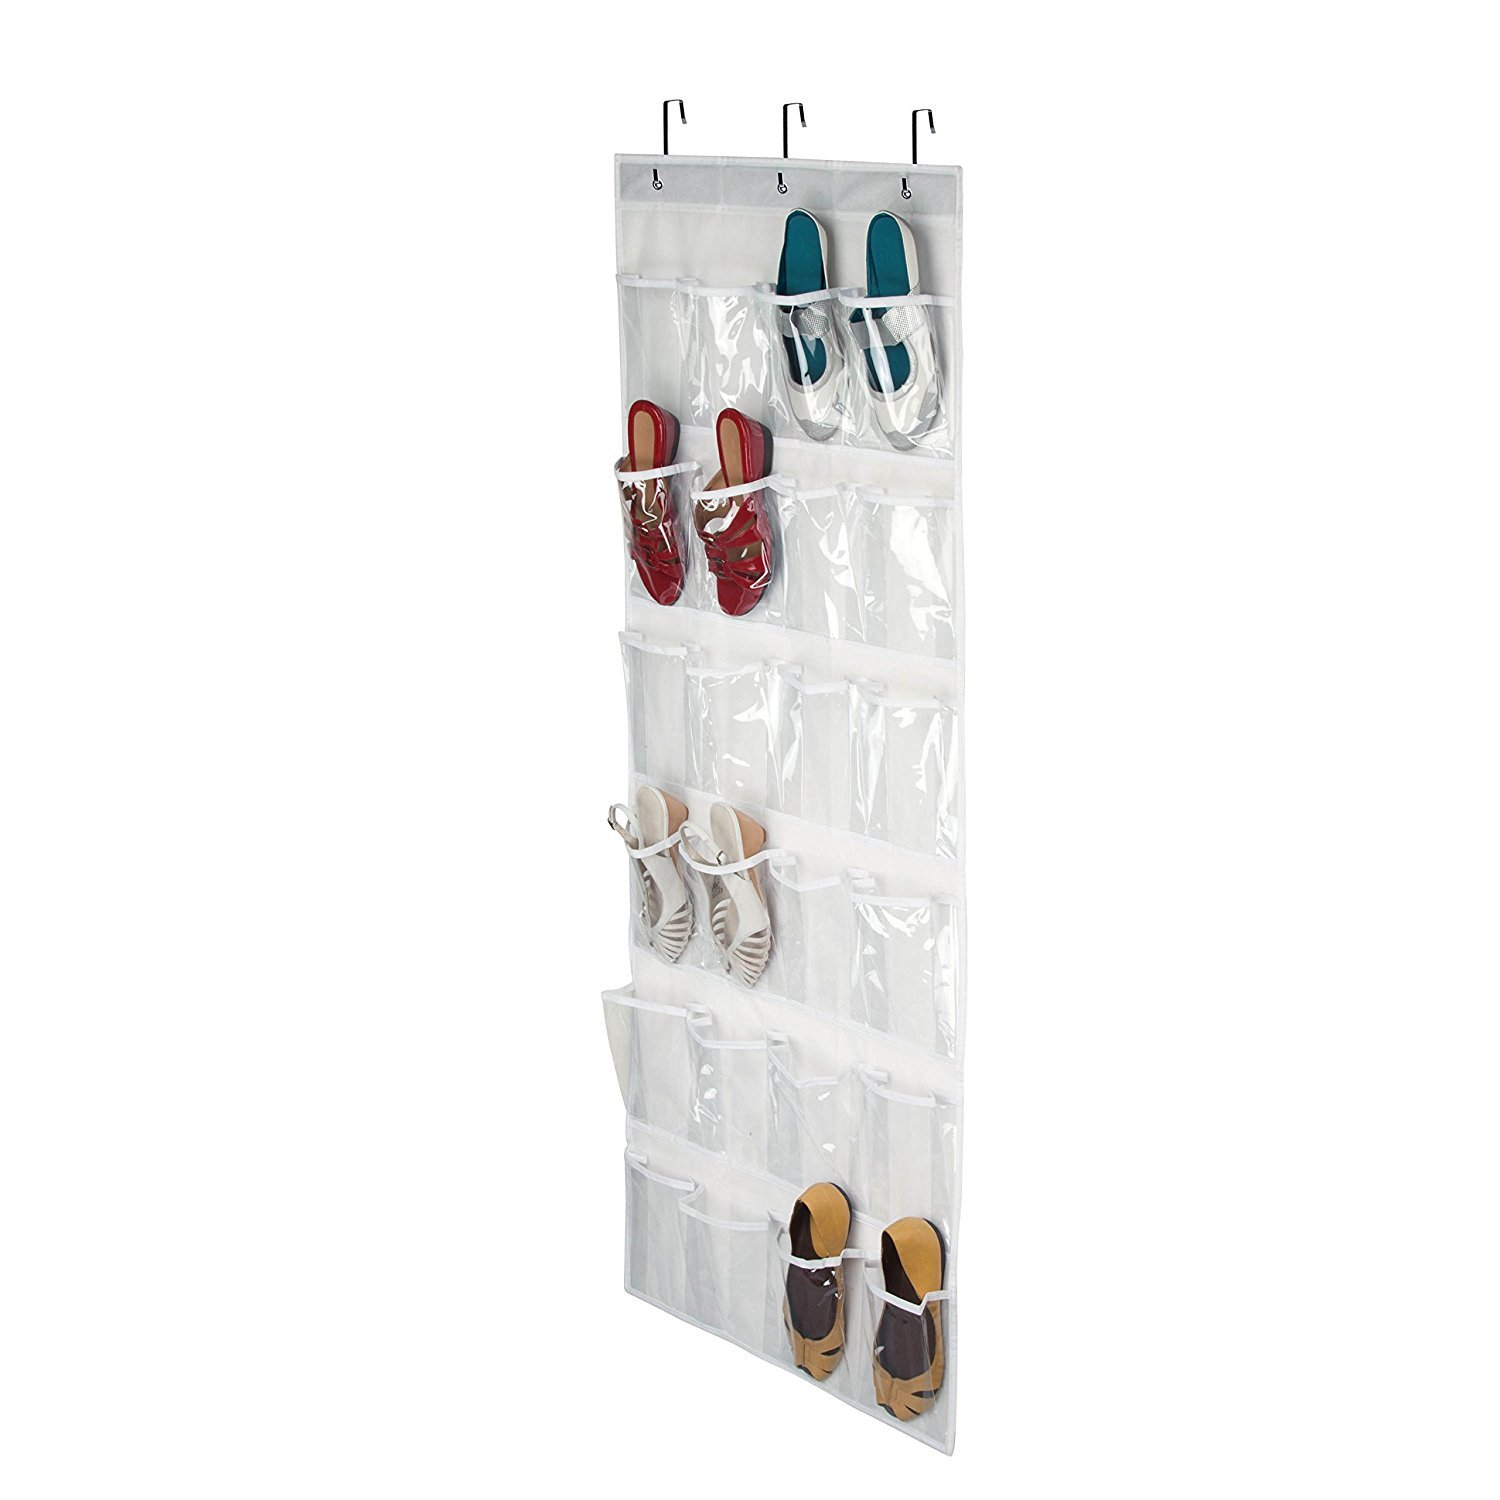 Toys Storage, 24 Pocket Hanging Wall Organizer,Over The Door Hanging Shoe Organizer Bag with Customized Metal Hooks Accessories for Bathroom, Laundry Items (White) Mofeng